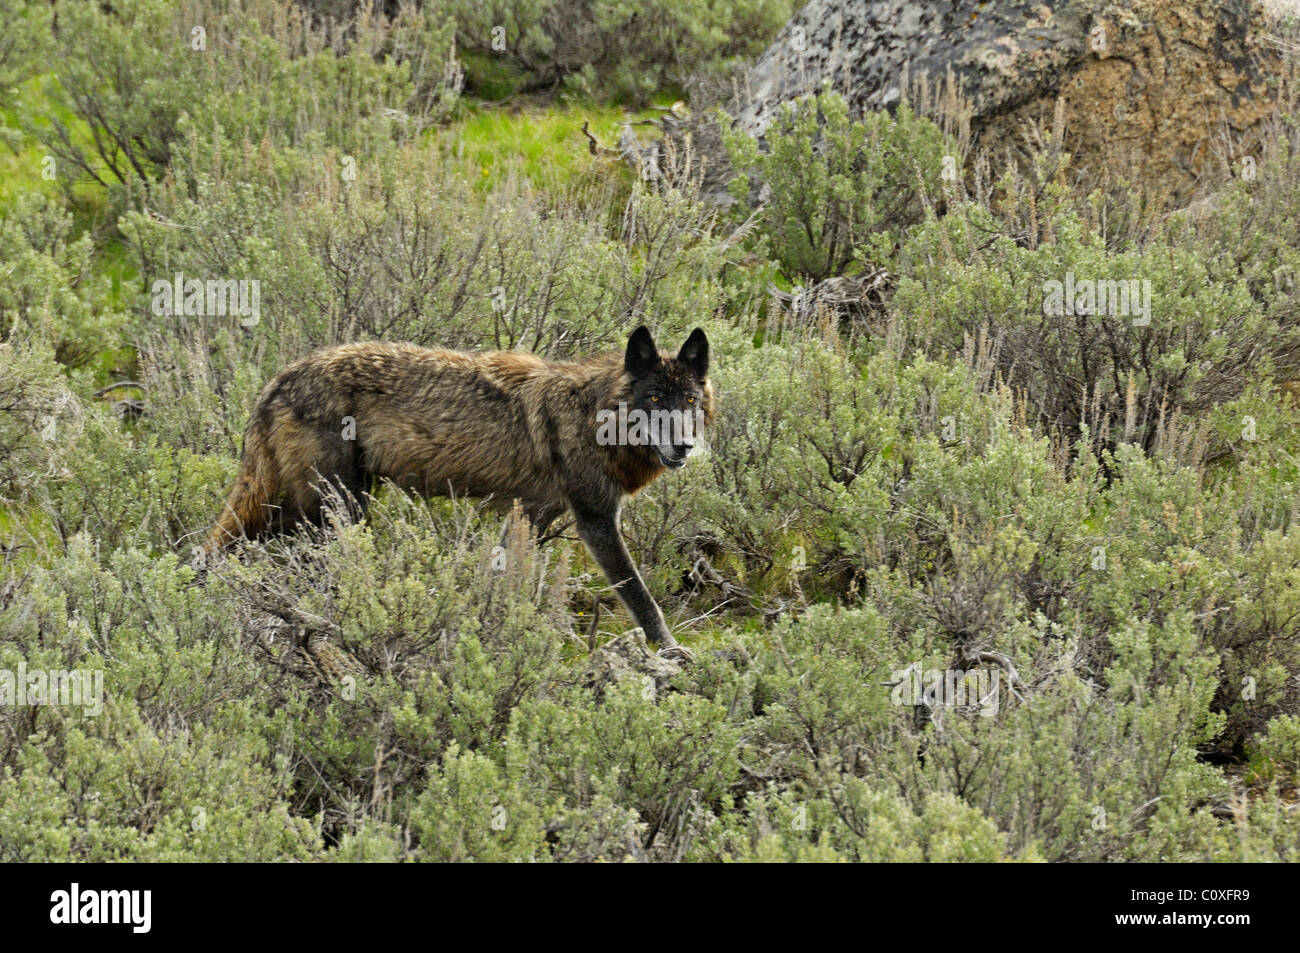 Black Wolf on the Move - Stock Image